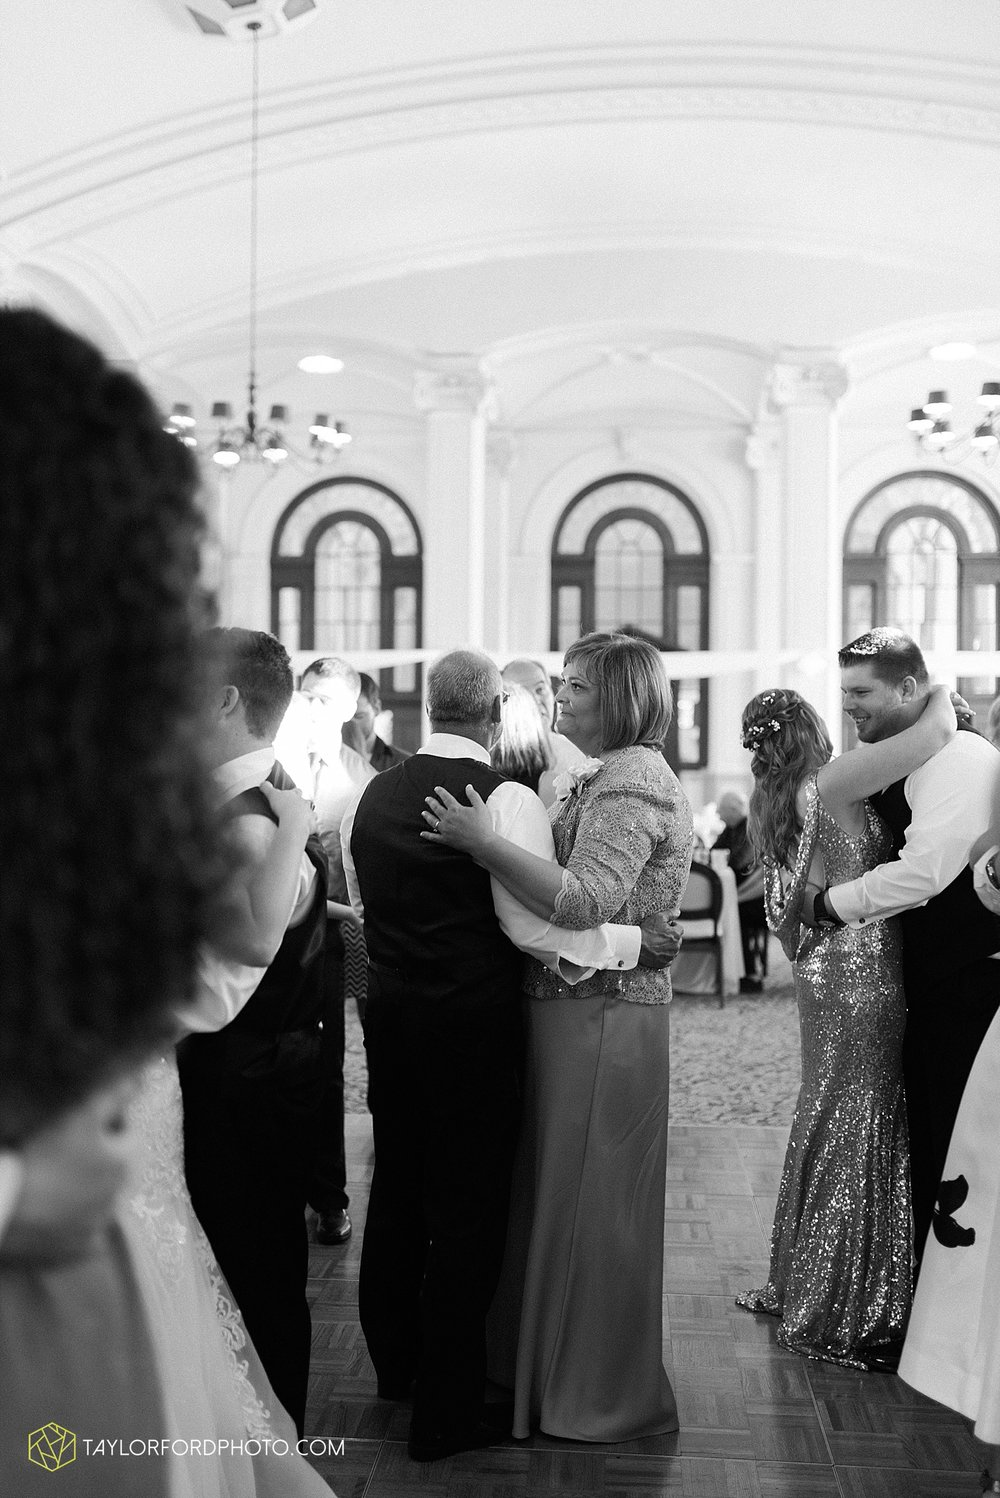 terre-haute-indiana-wedding-photographer-taylor-ford-photography-saint-marys-of-the-woods-college-weddings_2953.jpg